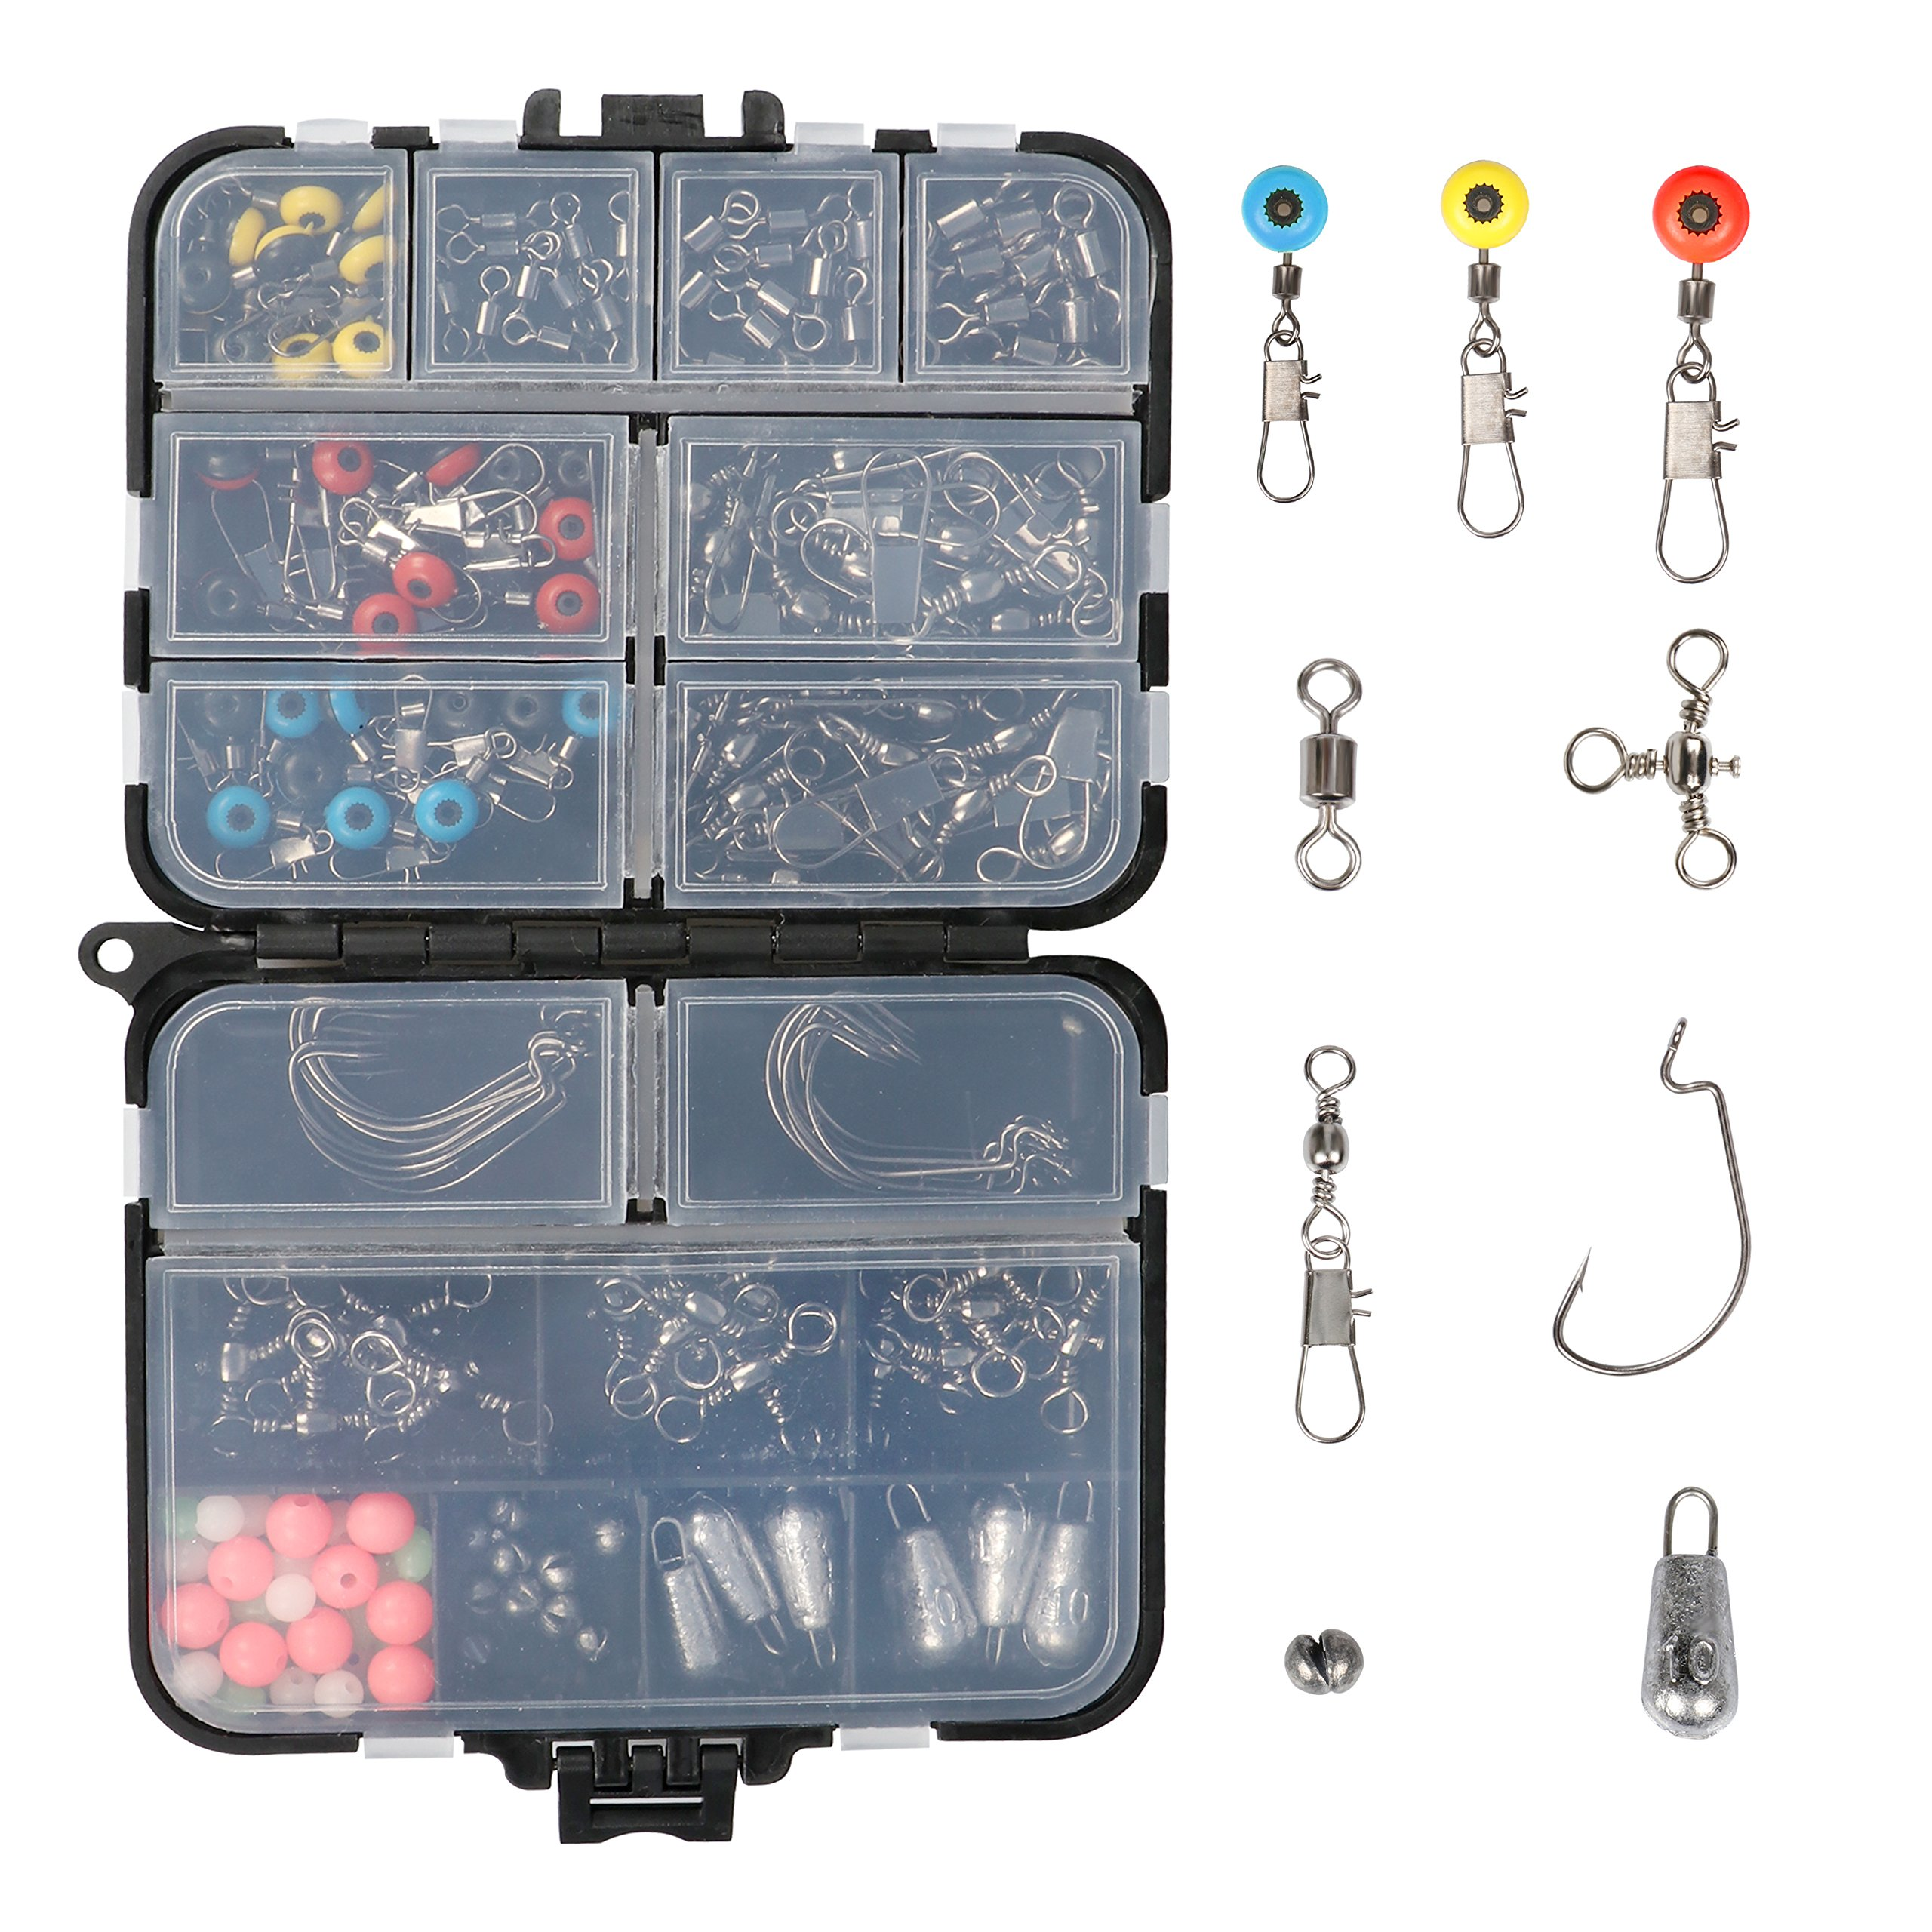 RUNCL Fishing Terminal Tackle, Fishing Tackle Box with Barrel Swivels, Safety Snaps, Off Set Hooks, Fishing Weights, Fishing Beads and Swivel Slides for Saltwater (Pack of 170) by RUNCL